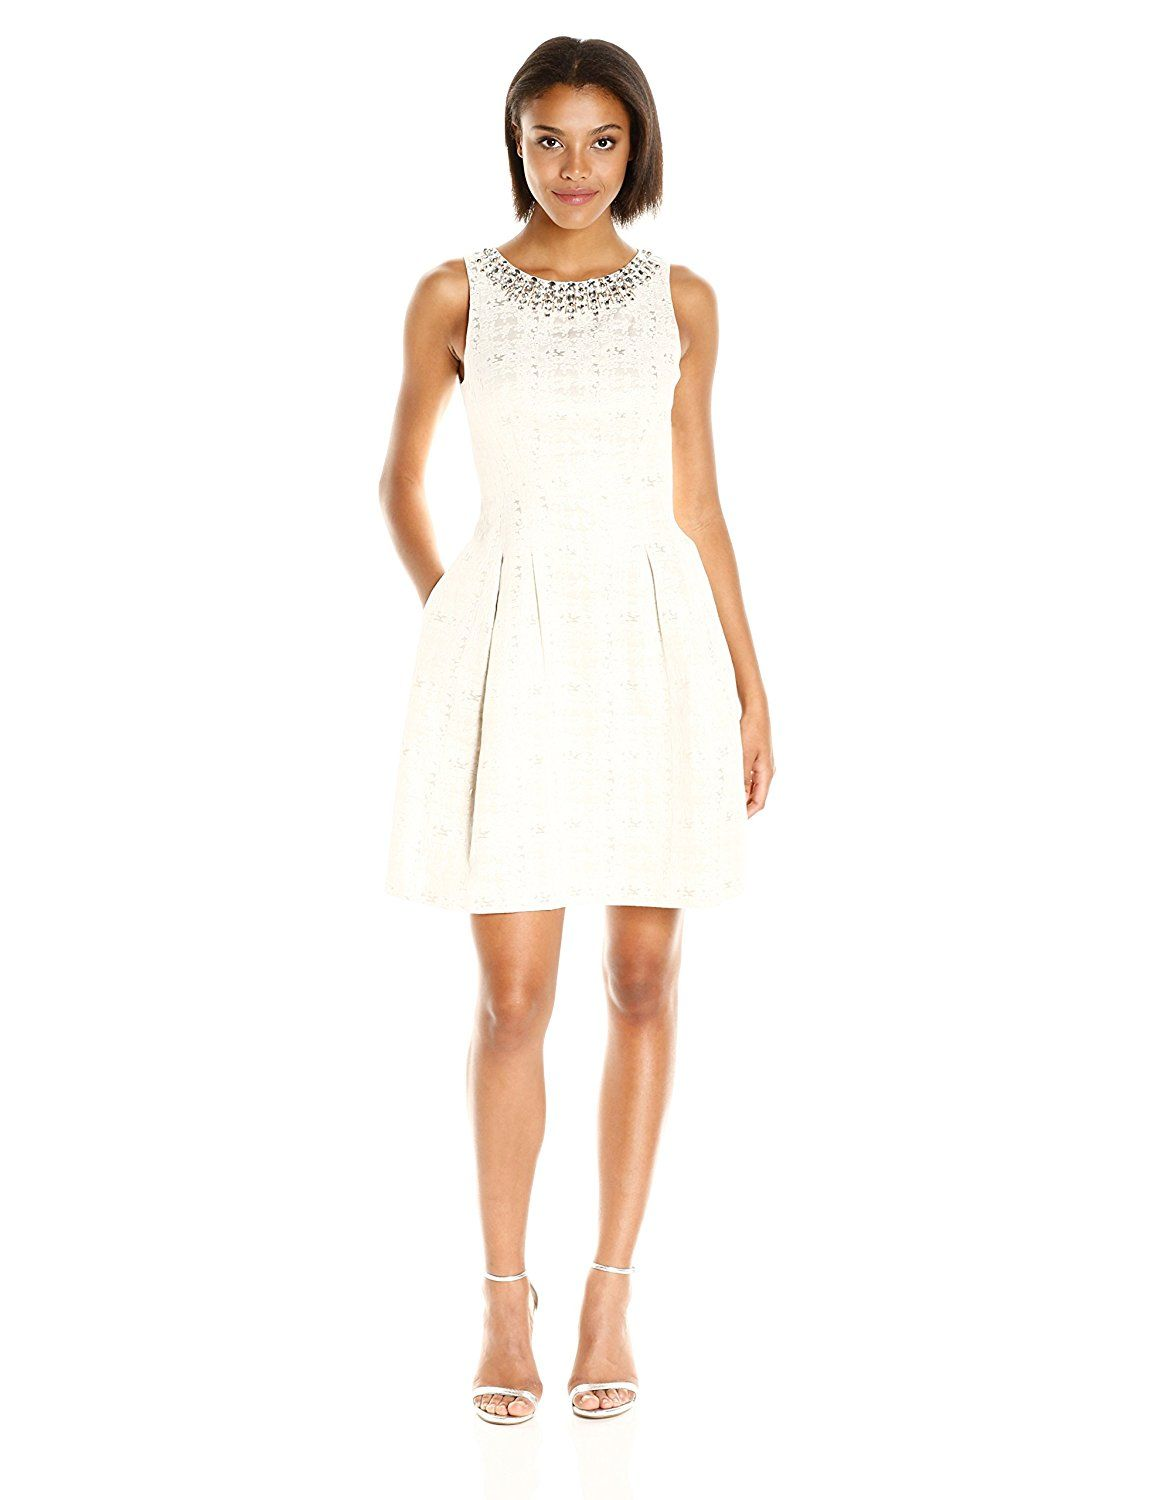 Vince Camuto Women 39 S Sleeveless Party Dress Ivory X2f Gold 6 At Amazon Women S Clothing Store Party Dress Dresses Fashion Design [ 1500 x 1154 Pixel ]